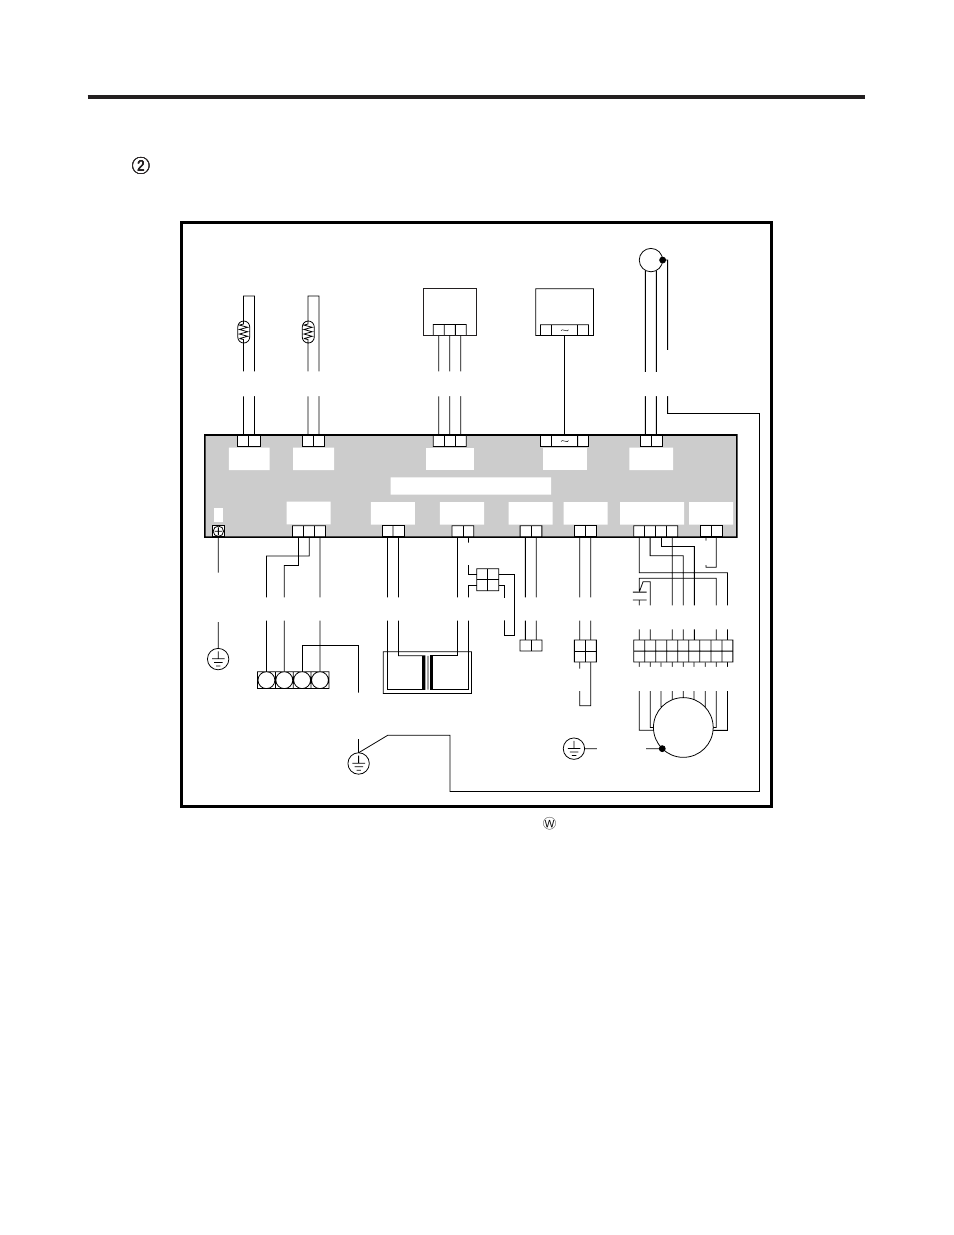 2003 Jeep Grand Cherokee Radio Wiring Diagram : Mazda protege wiring harness